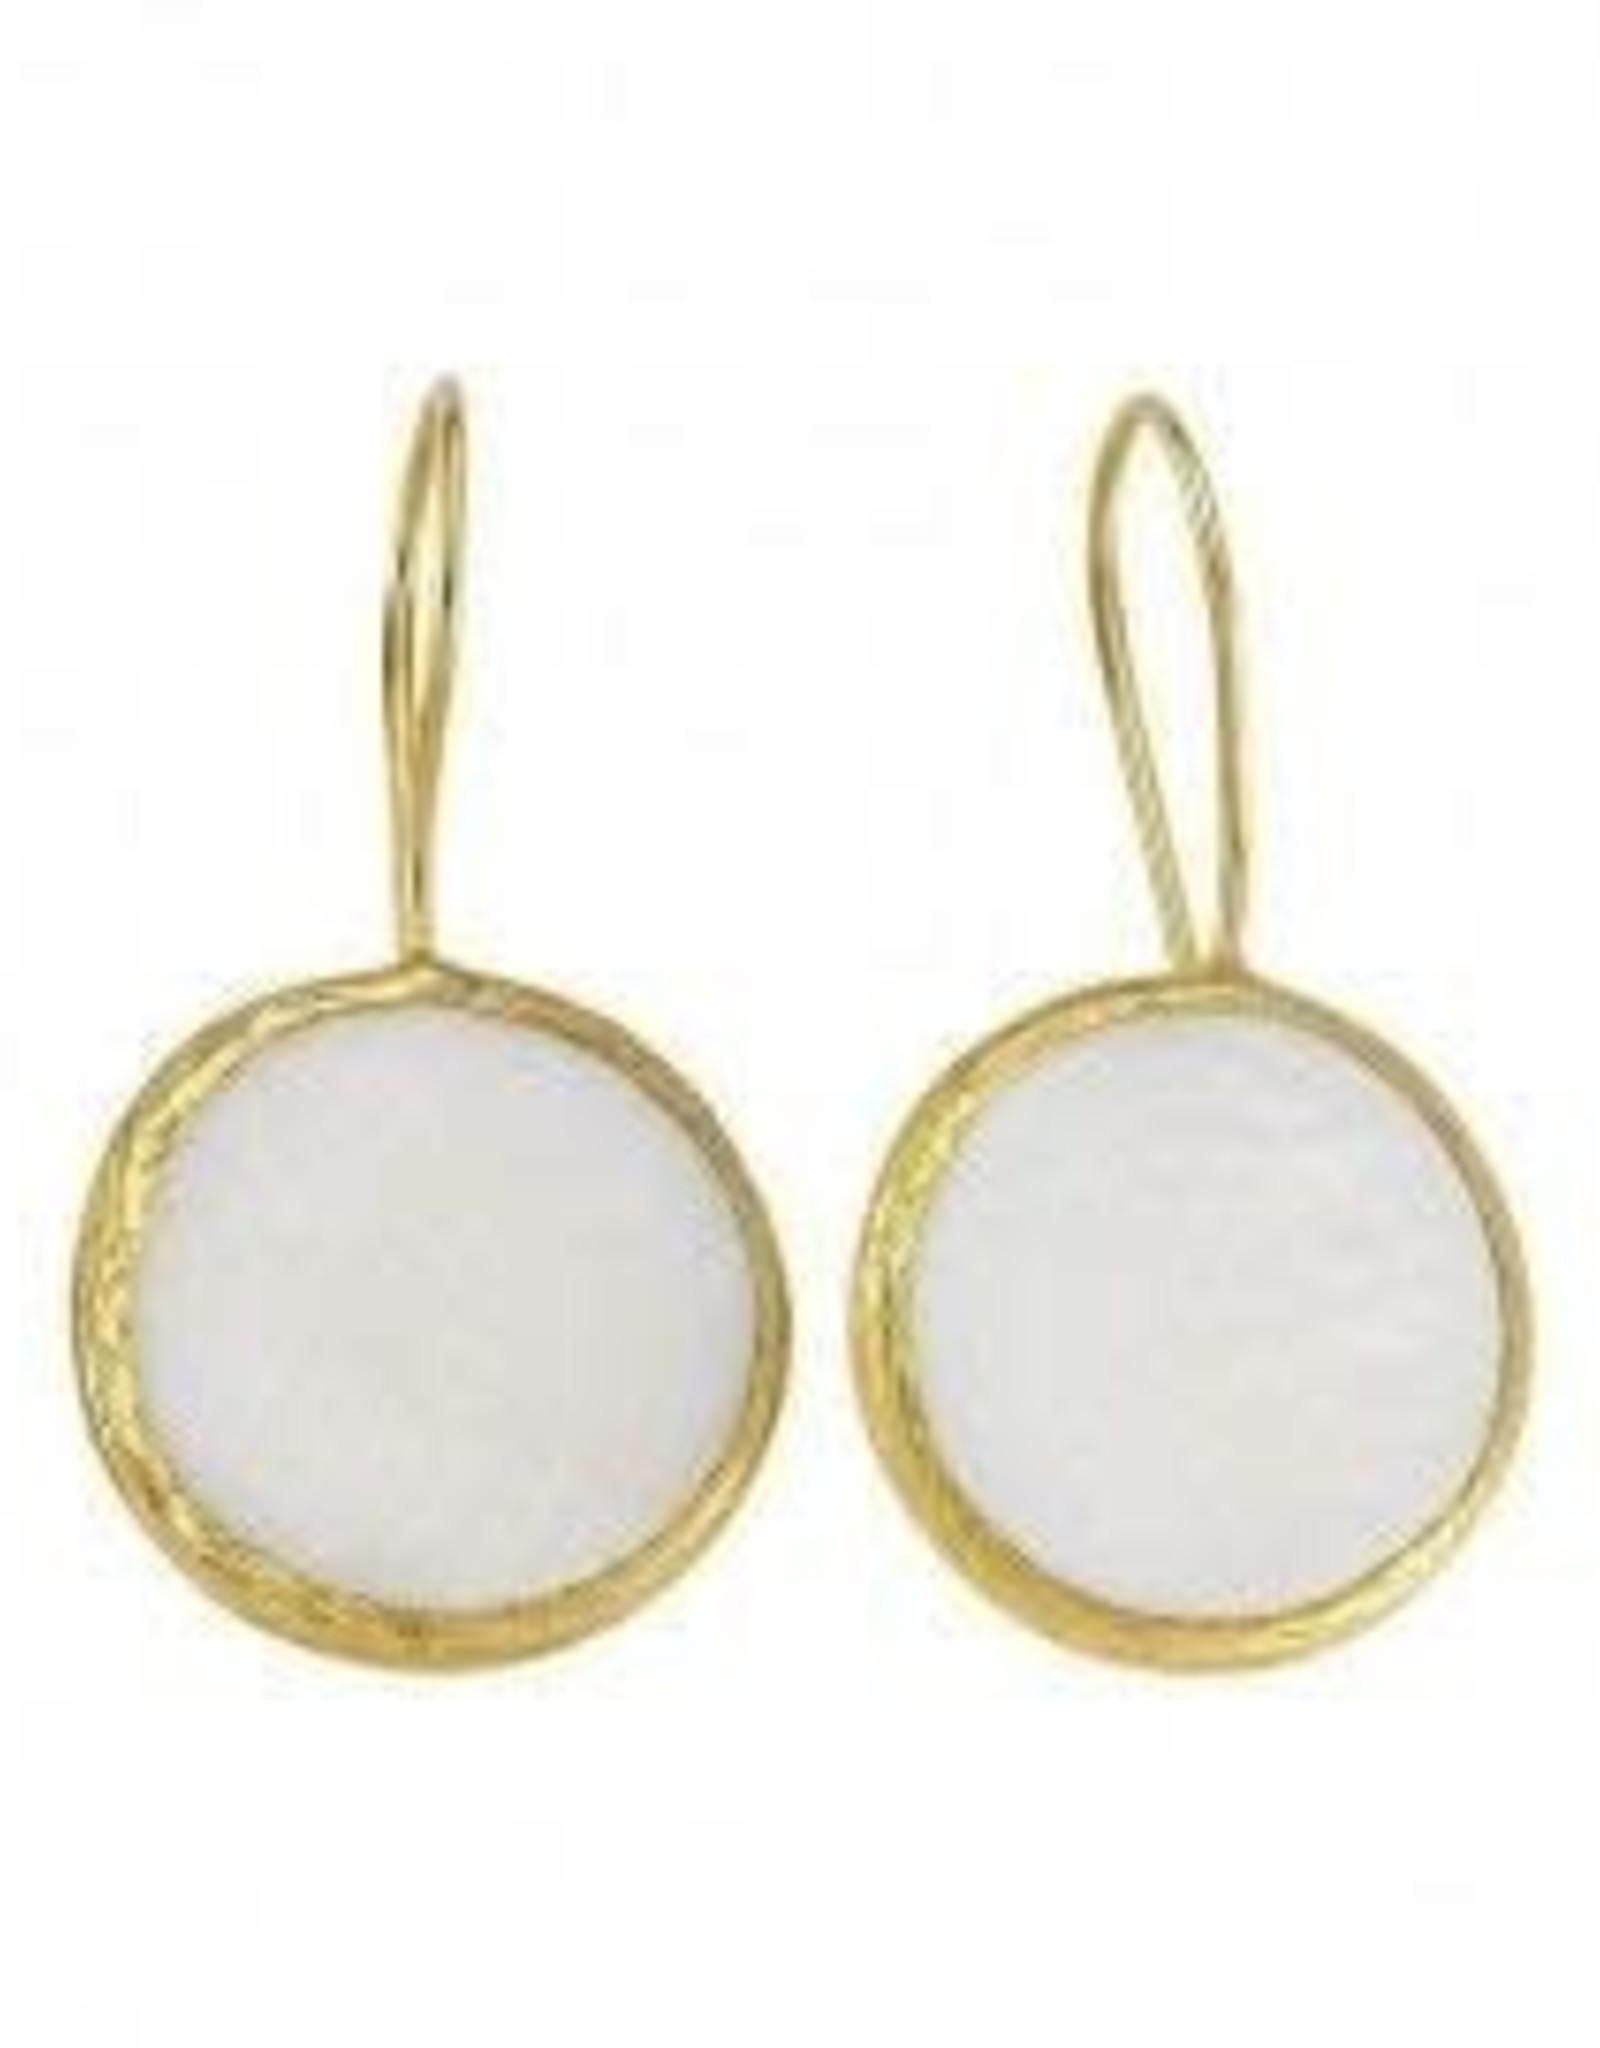 White 18kt over brass natural stone